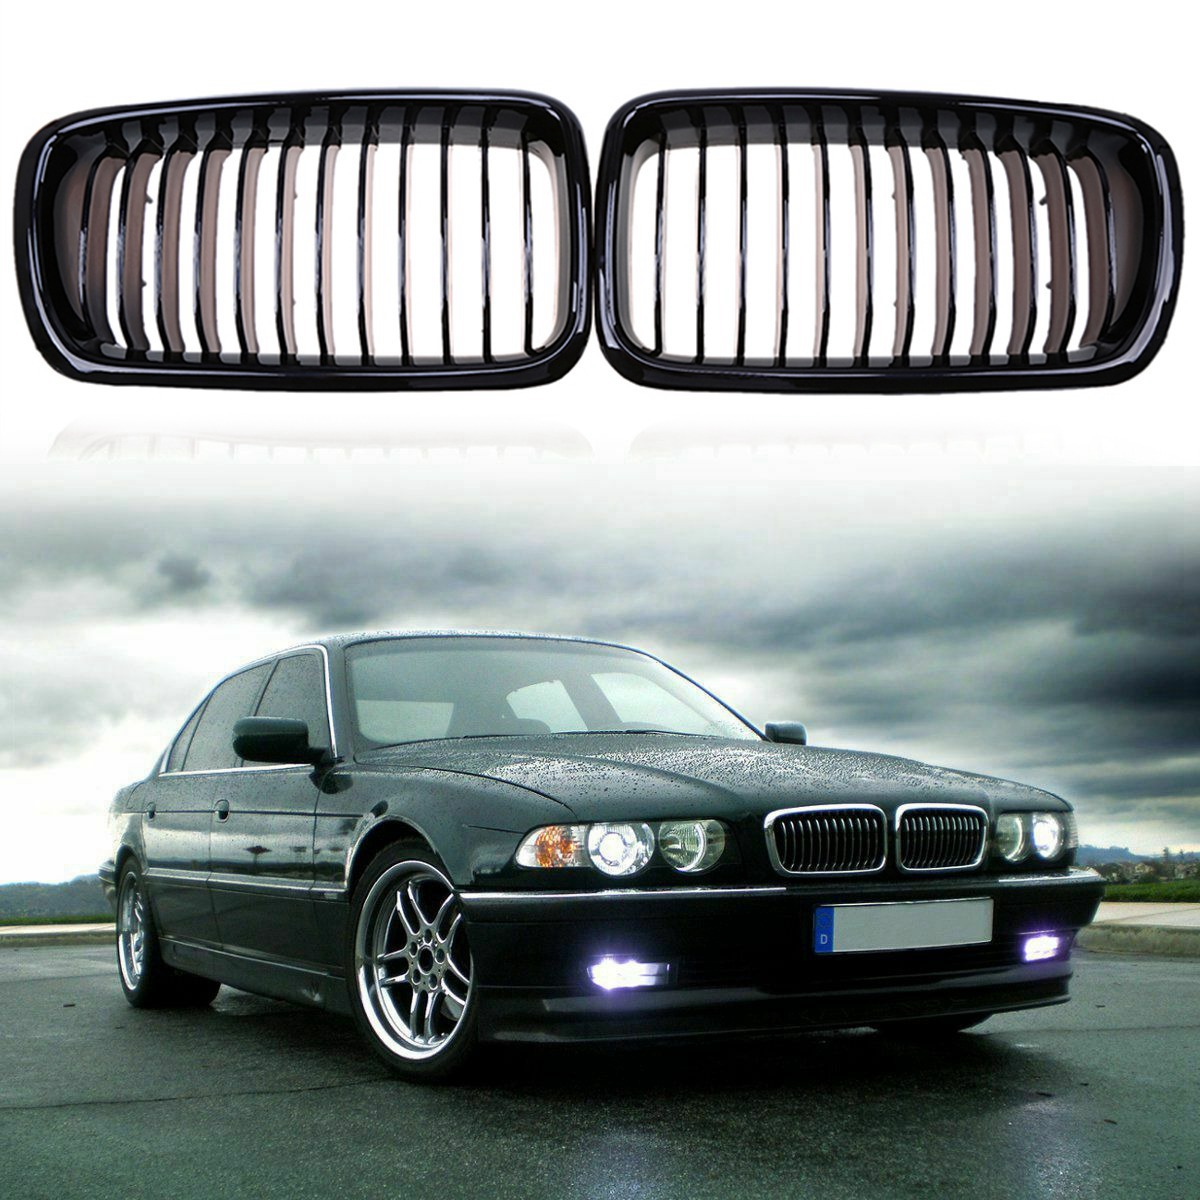 Front Bumper Hood Kidney Grille Grill for <font><b>BMW</b></font> <font><b>E38</b></font> <font><b>7</b></font> <font><b>Series</b></font> 728 730 735 740 1995-2001(Glossy Black )51138125811 51138125812 image